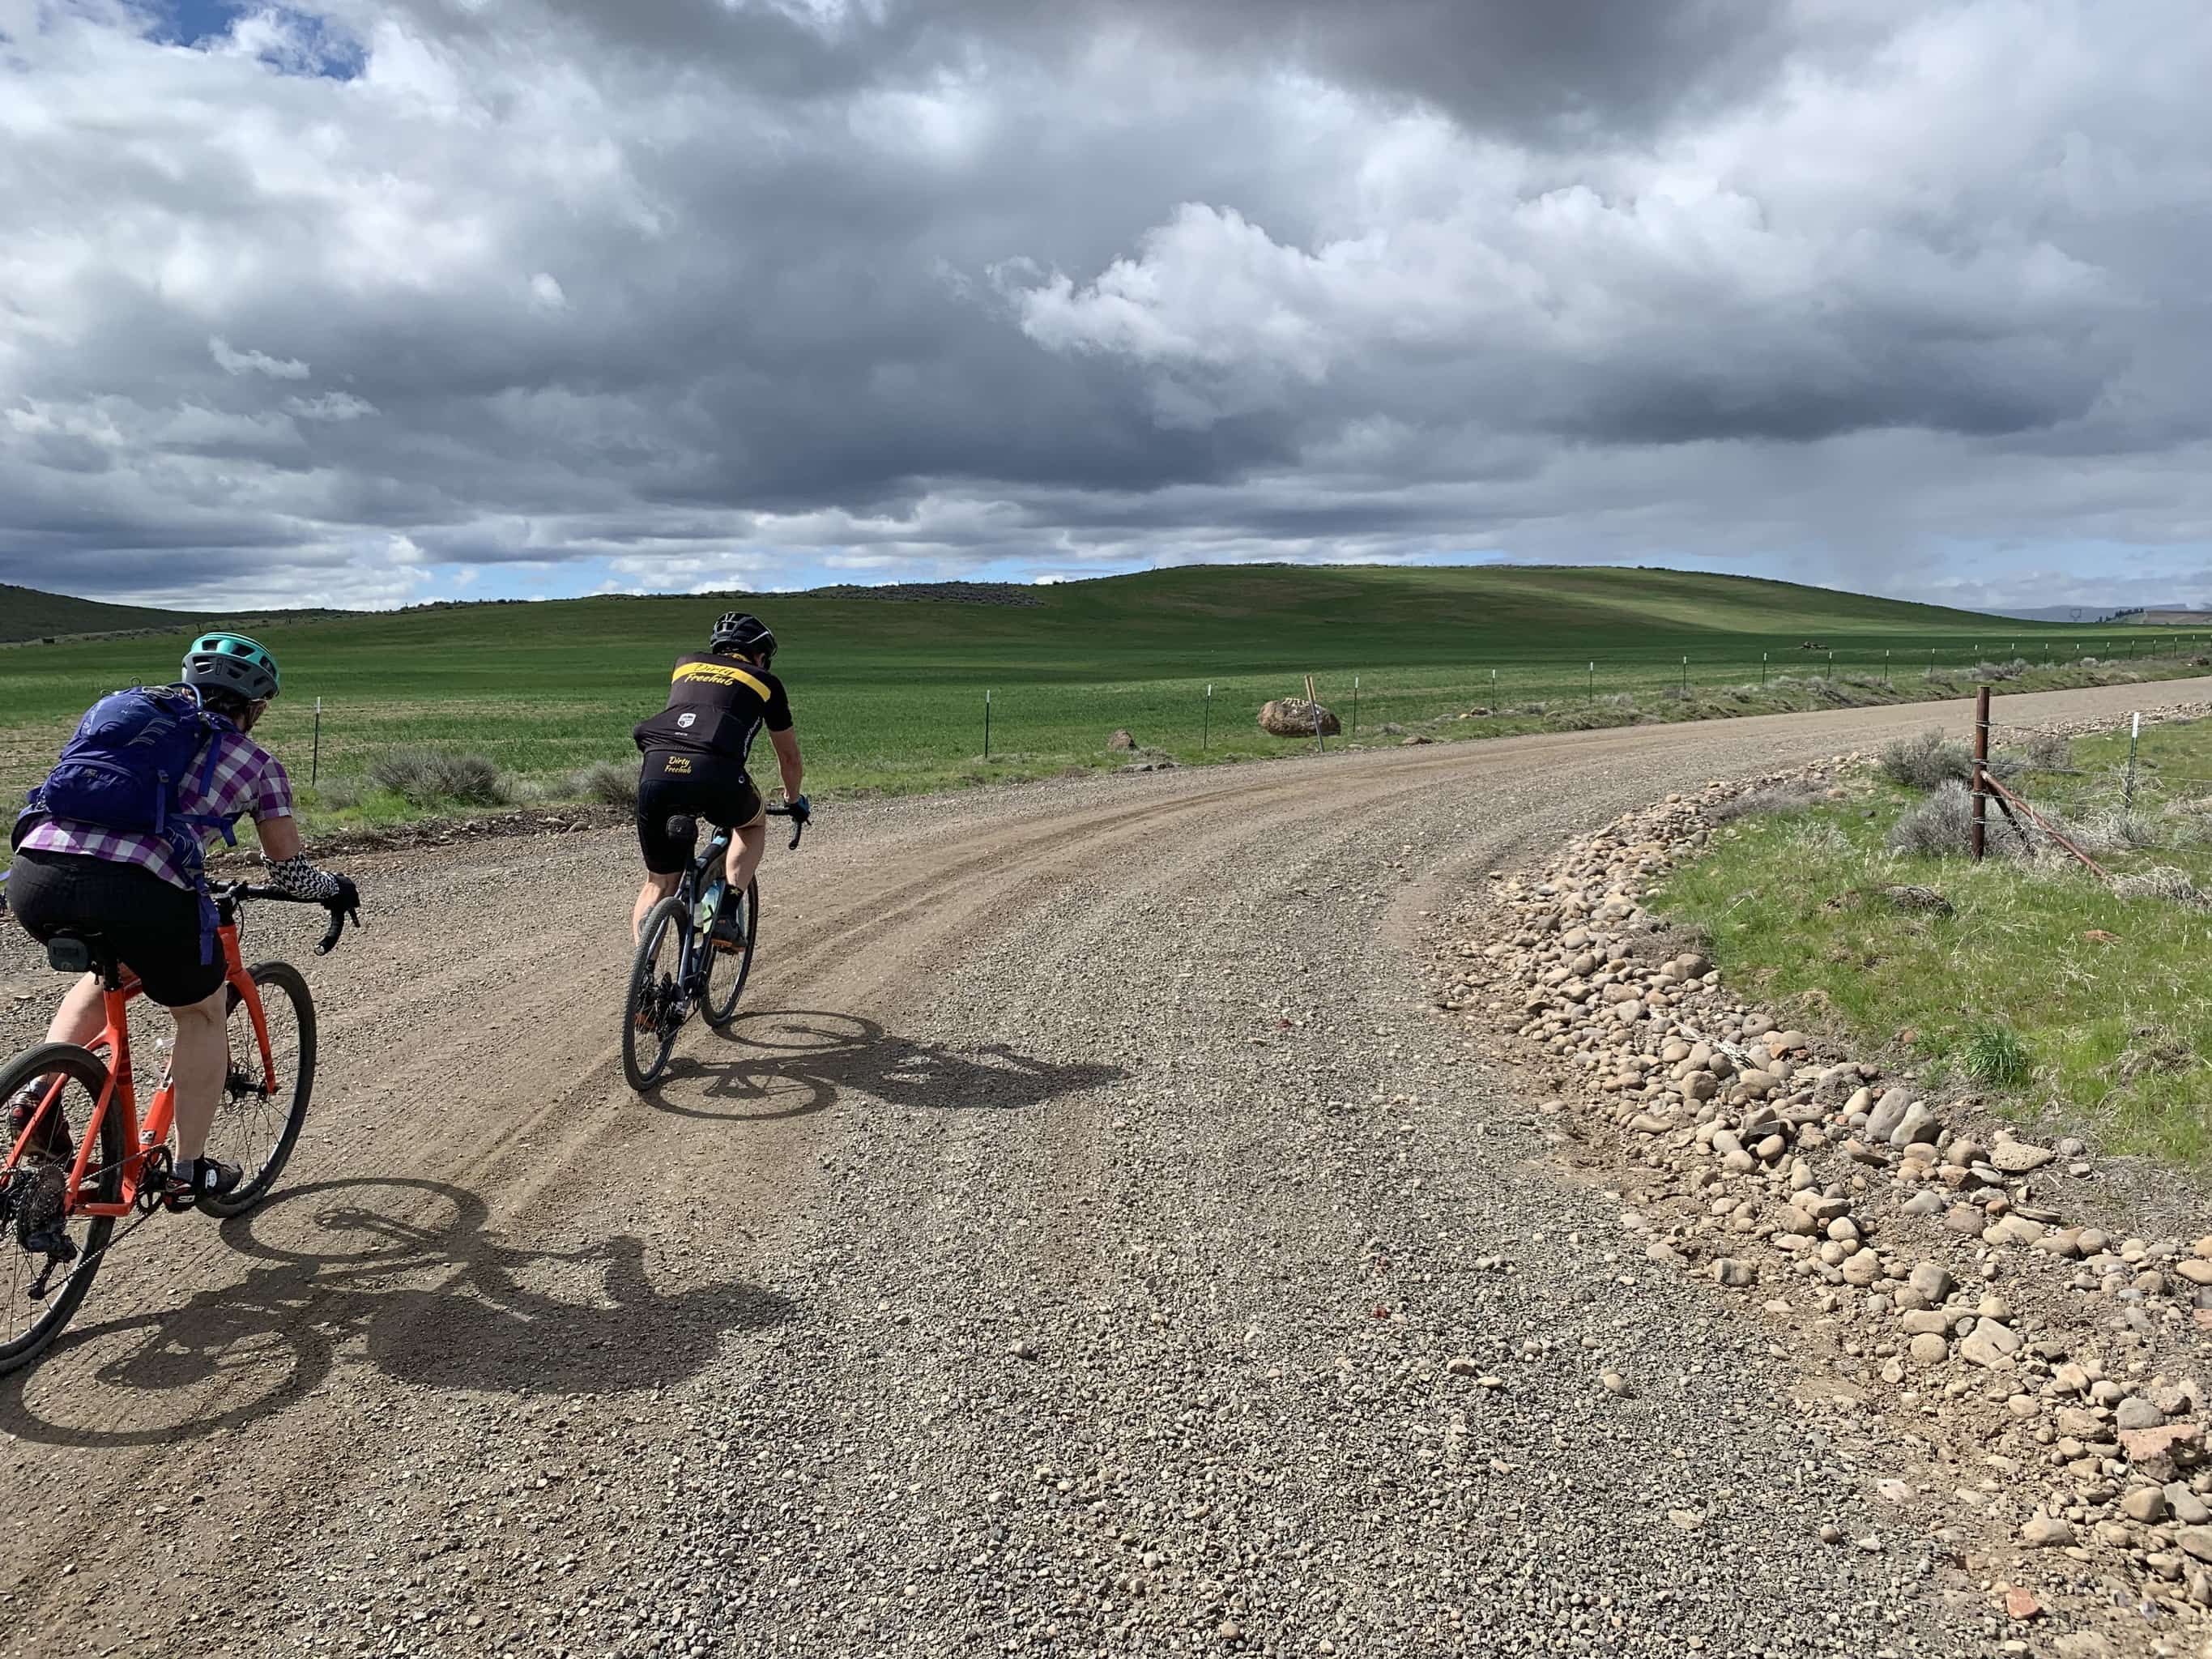 Gravel cyclist on sweeping turn on gravel road.